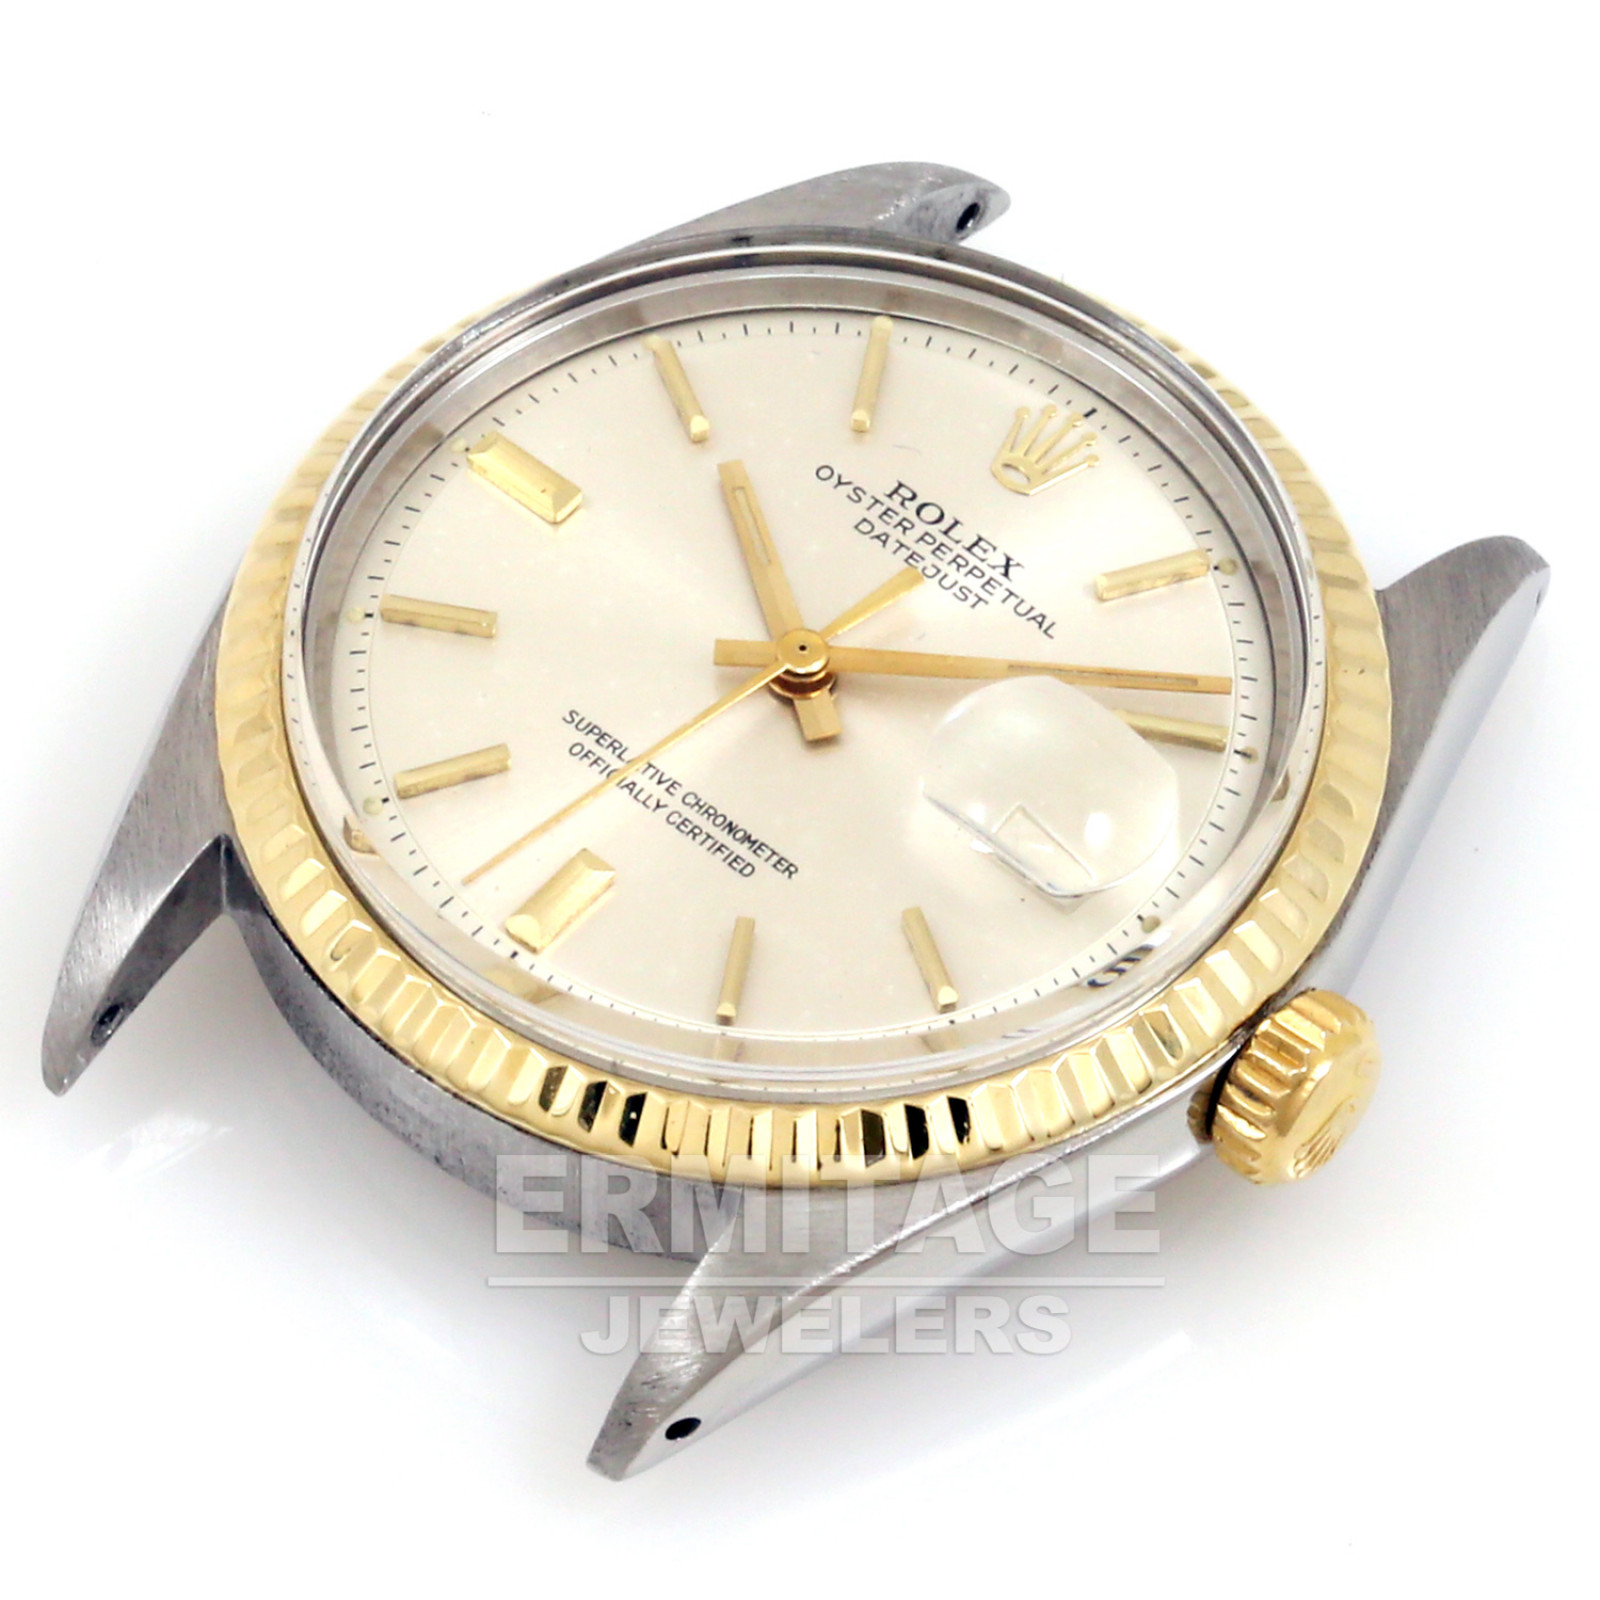 Vintage Rolex Men's Datejust 1601